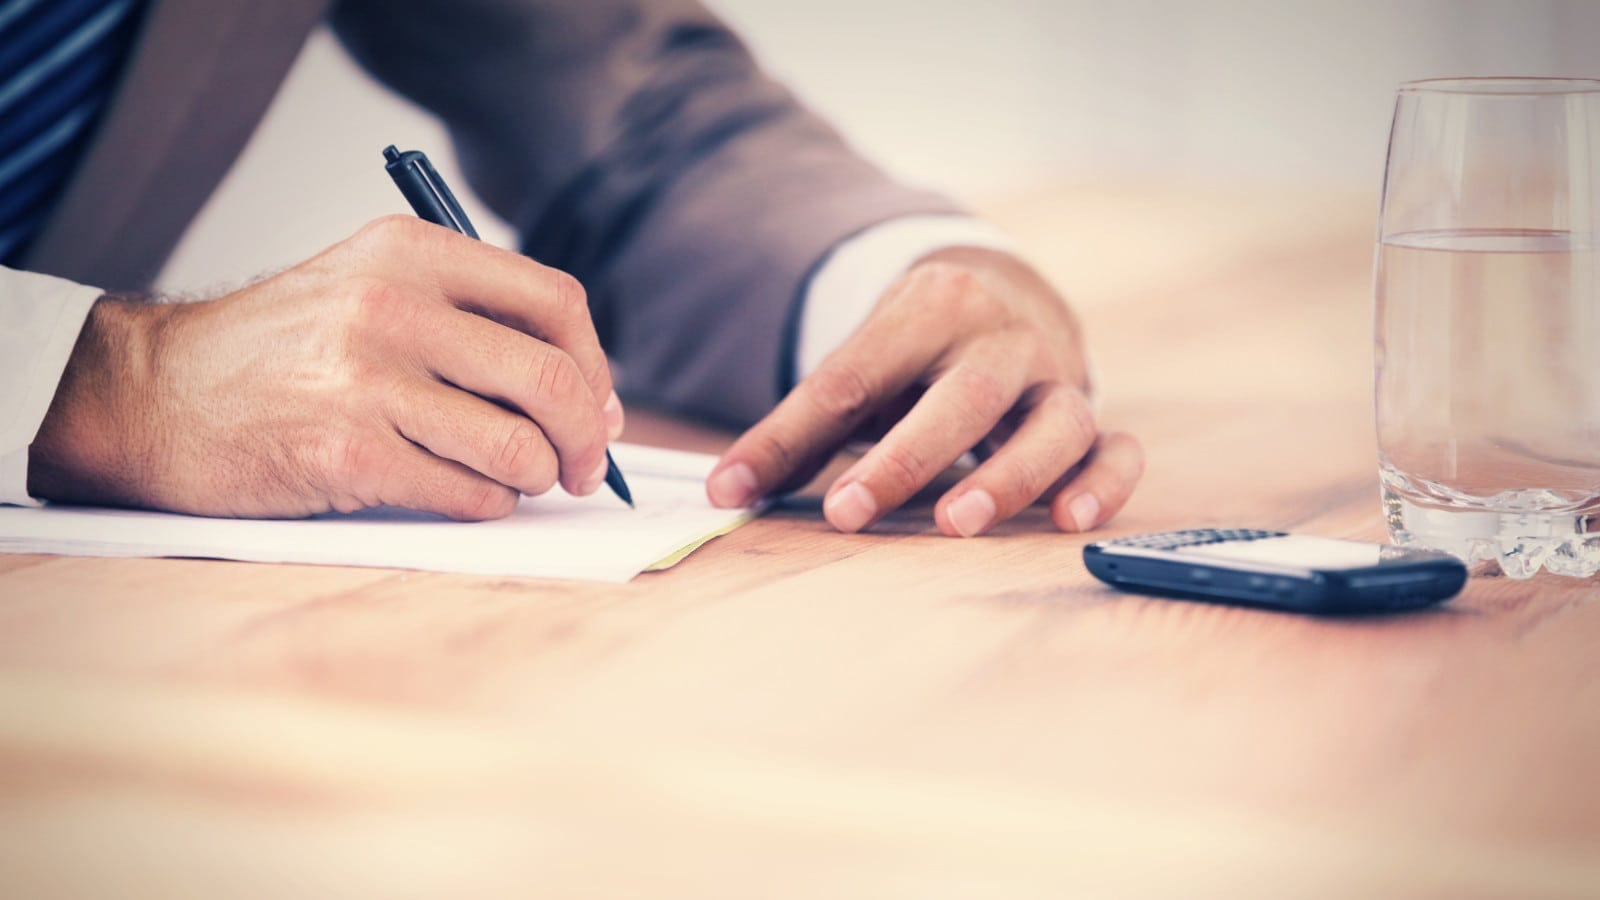 A lawyer taking notes during a meeting.